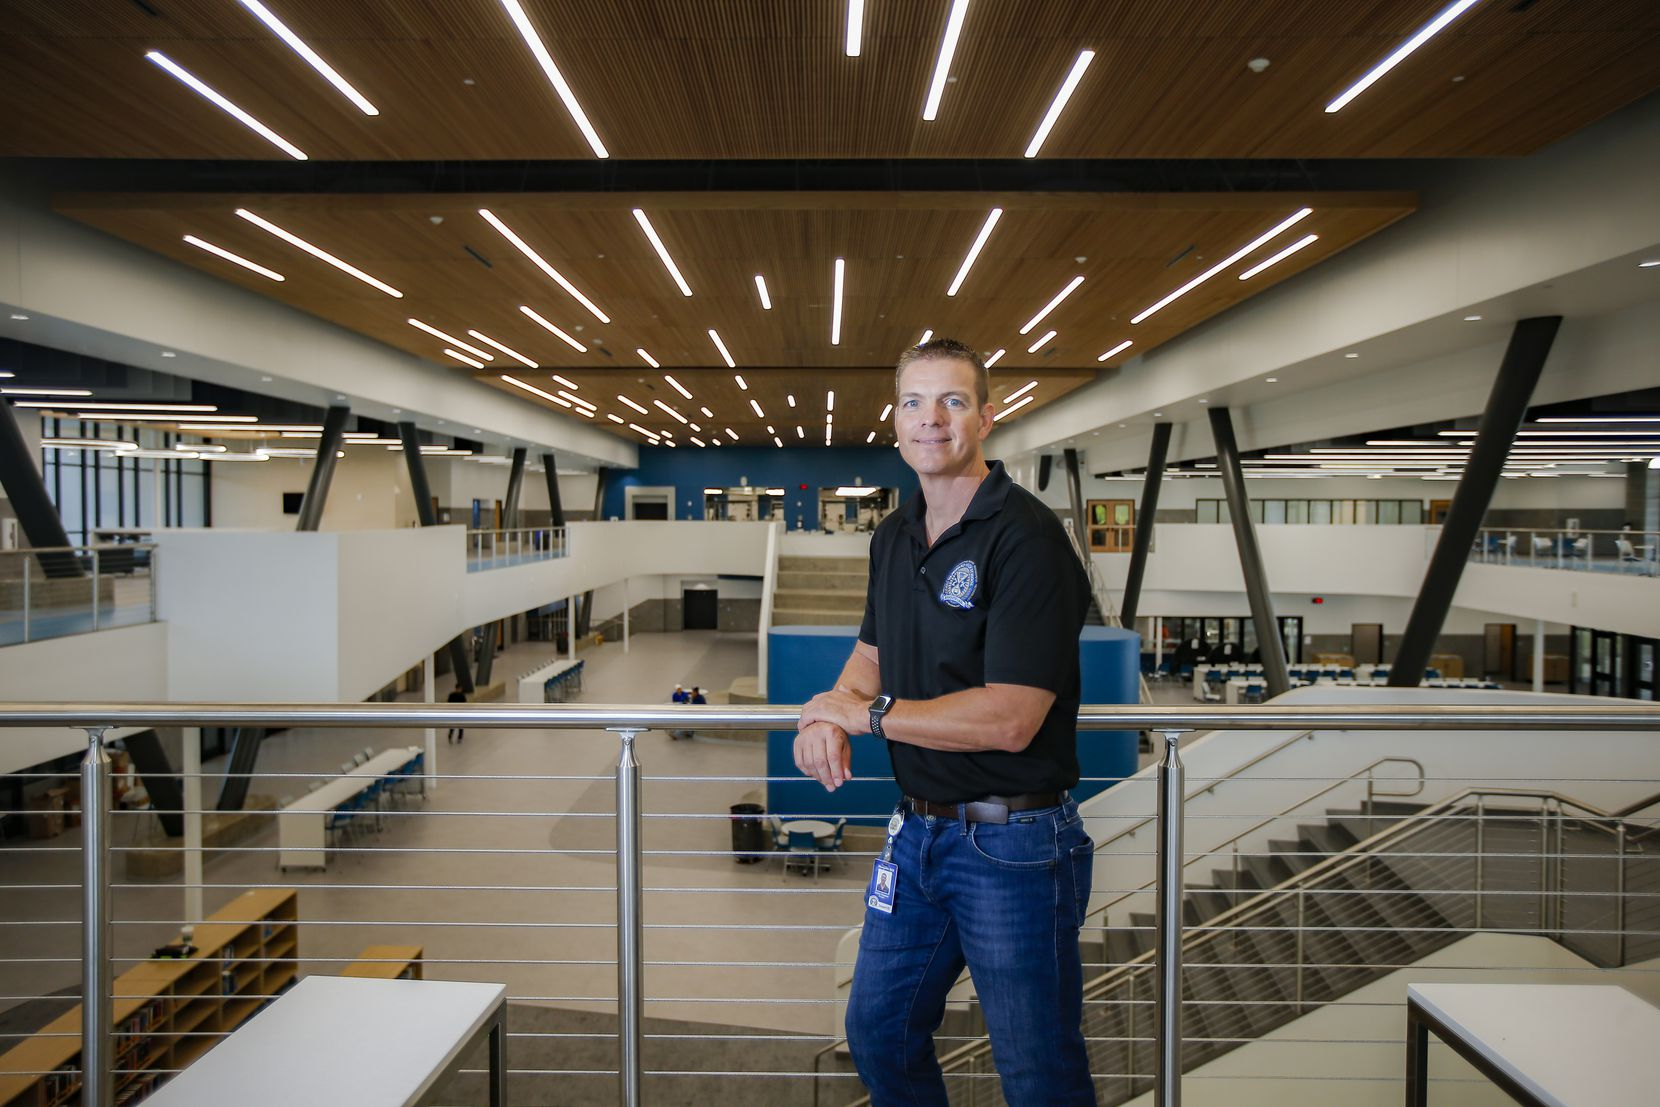 """Clint Elsasser, top administrator at Mesquite's new Vanguard High School, says the new school is all about """"ripping the lid"""" off traditional education."""